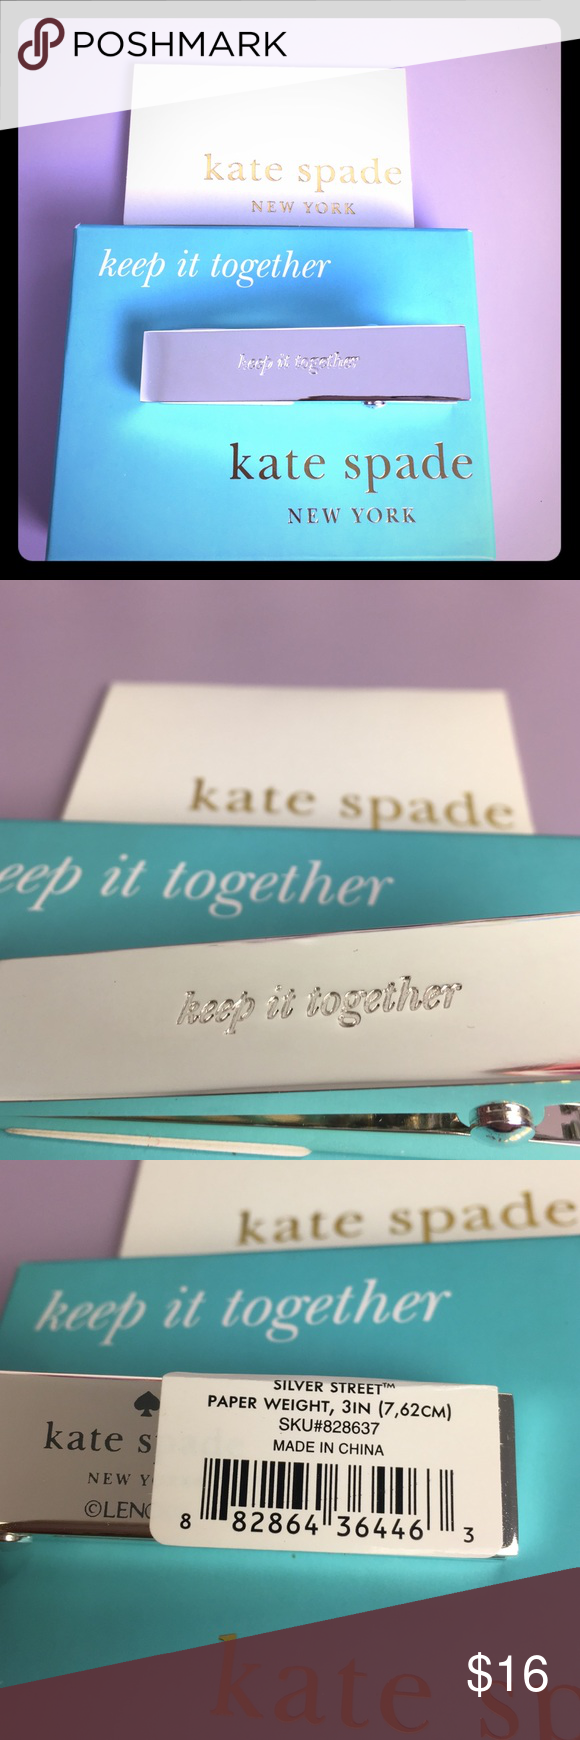 Kate Spade Silver Street Paper Weight Clip NWT Kate Spade Silver Street Paper Weight Clip- Silver Plate- NWT kate spade Accessories